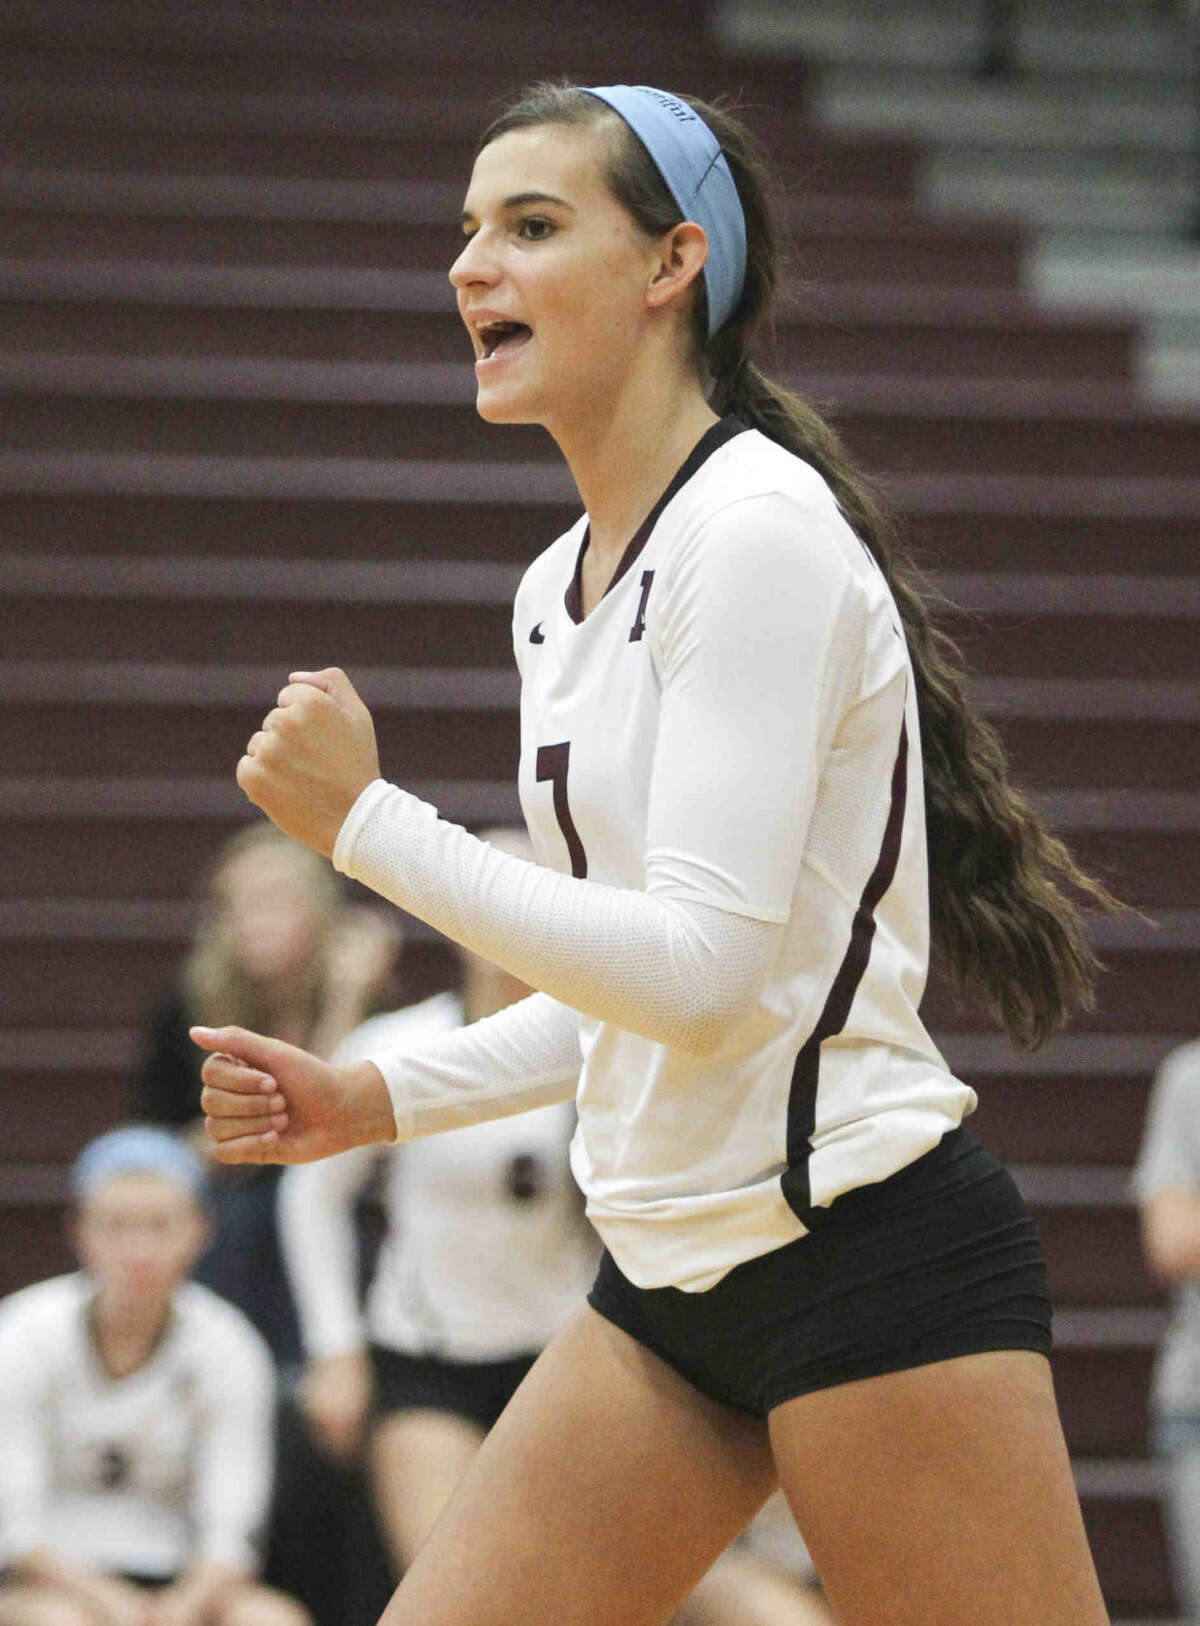 Magnolia's Morgan Miller celebrates after a point during a game at the Magnolia Volley Battle at Magnolia High School Thursday. To view or purchase this photo and others like it, visit HCNpics.com.